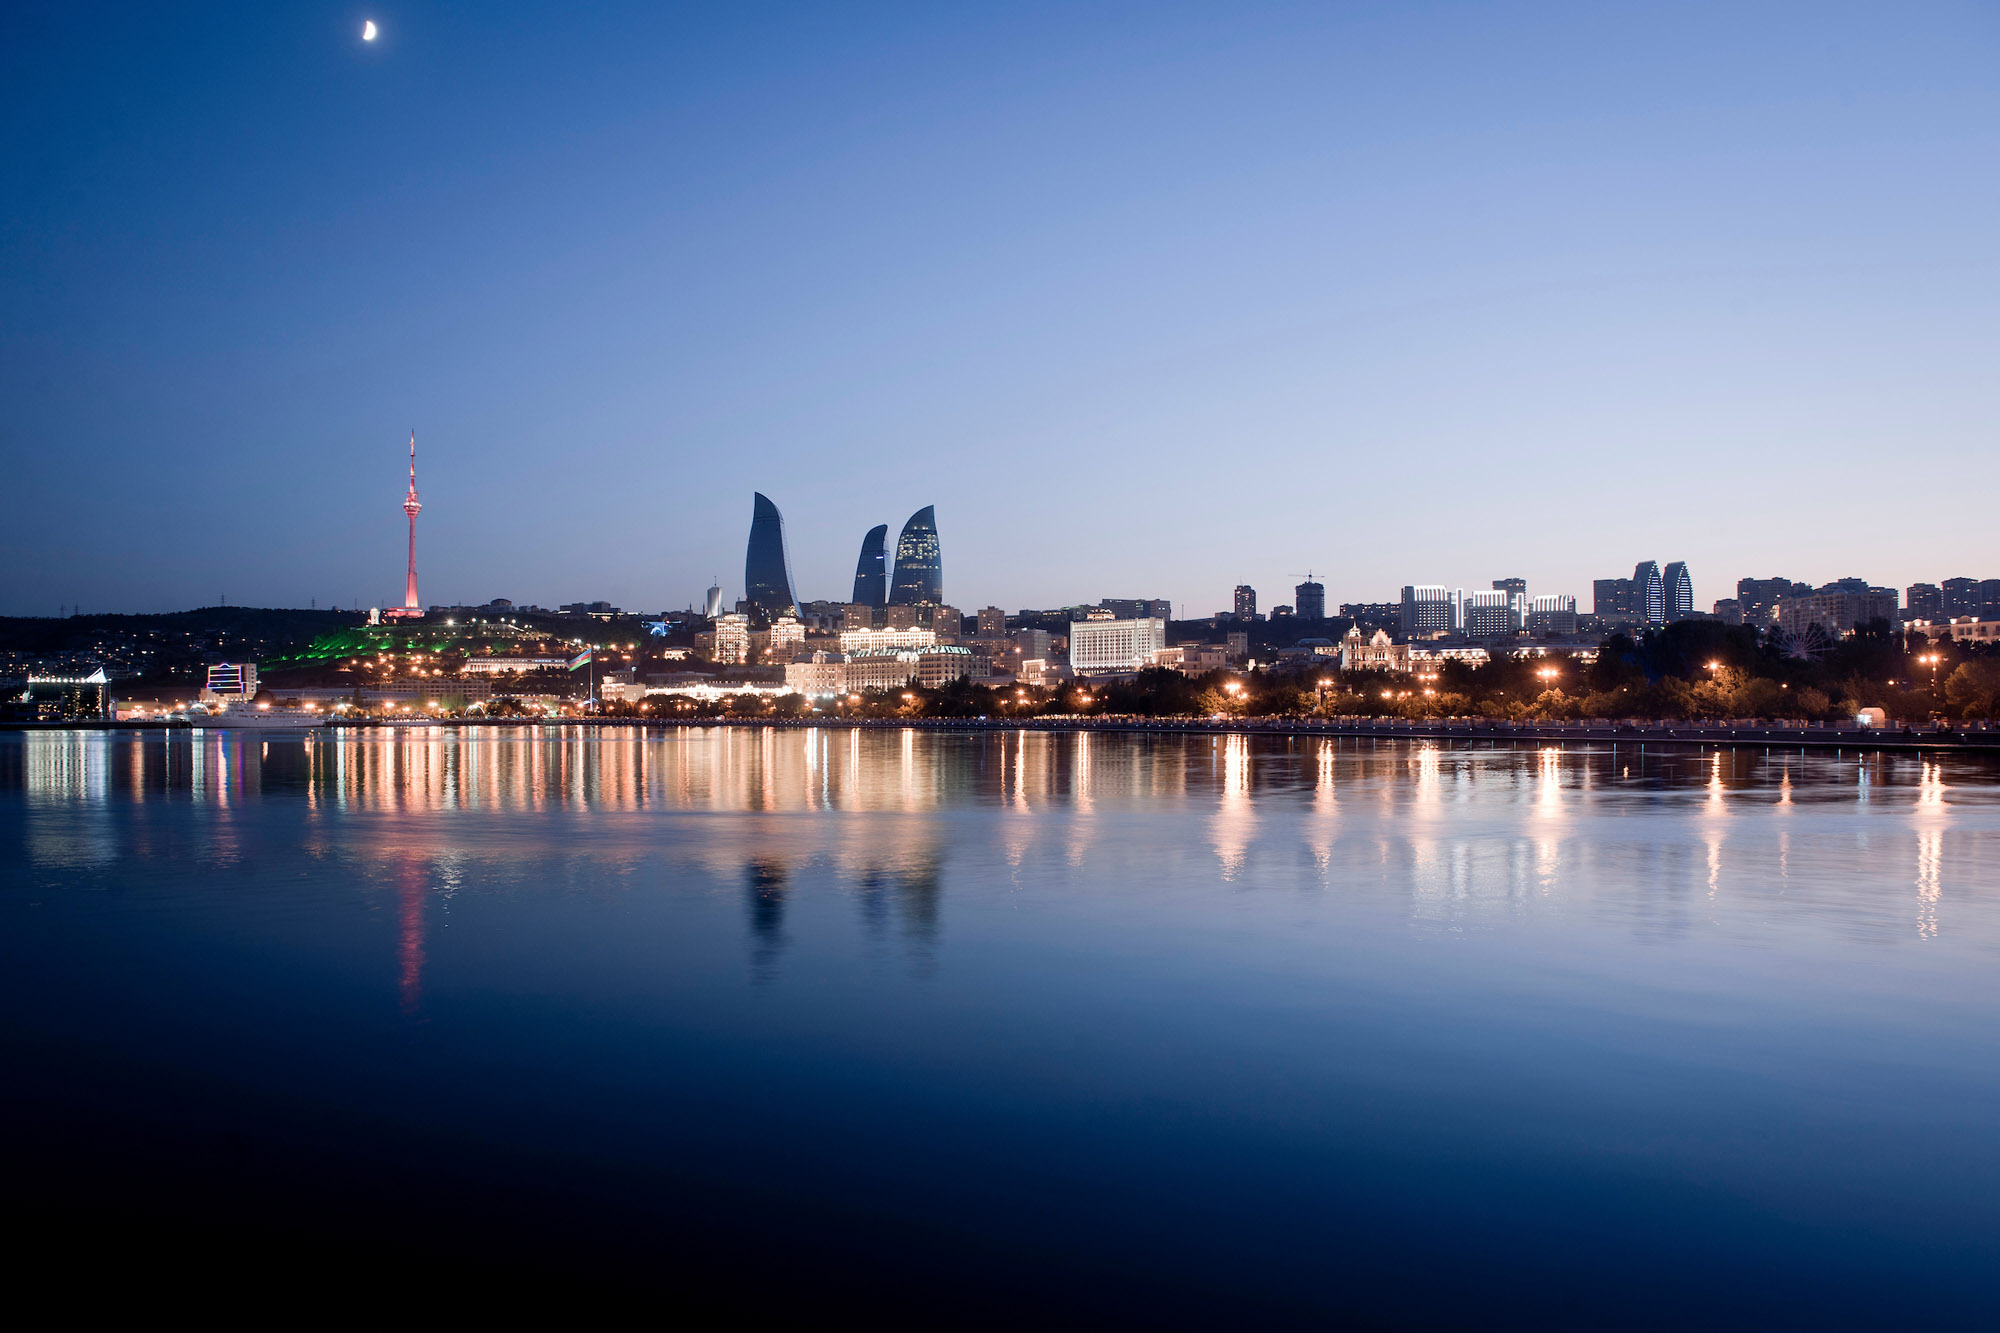 View of Baku at night